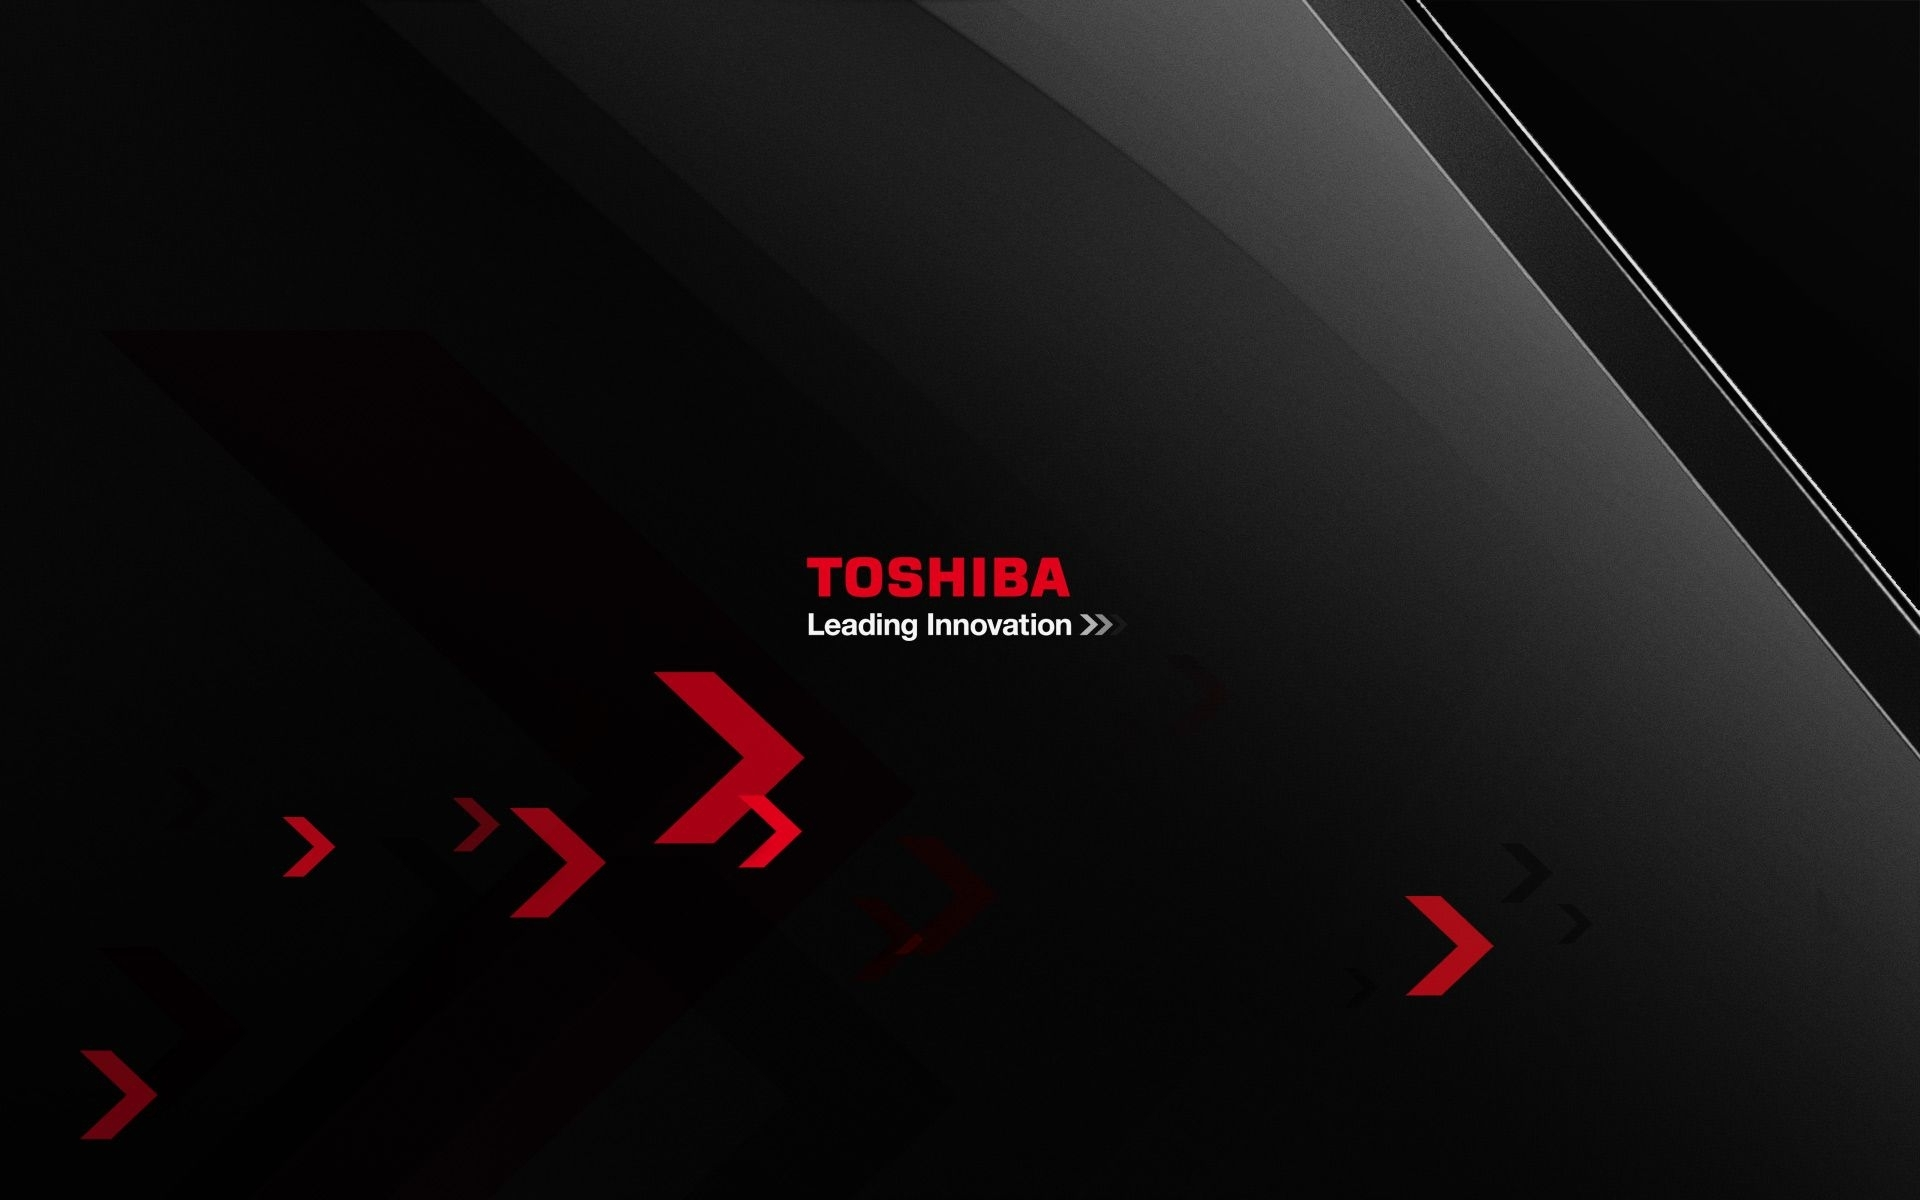 toshiba backgrounds wallpapers group (76+)